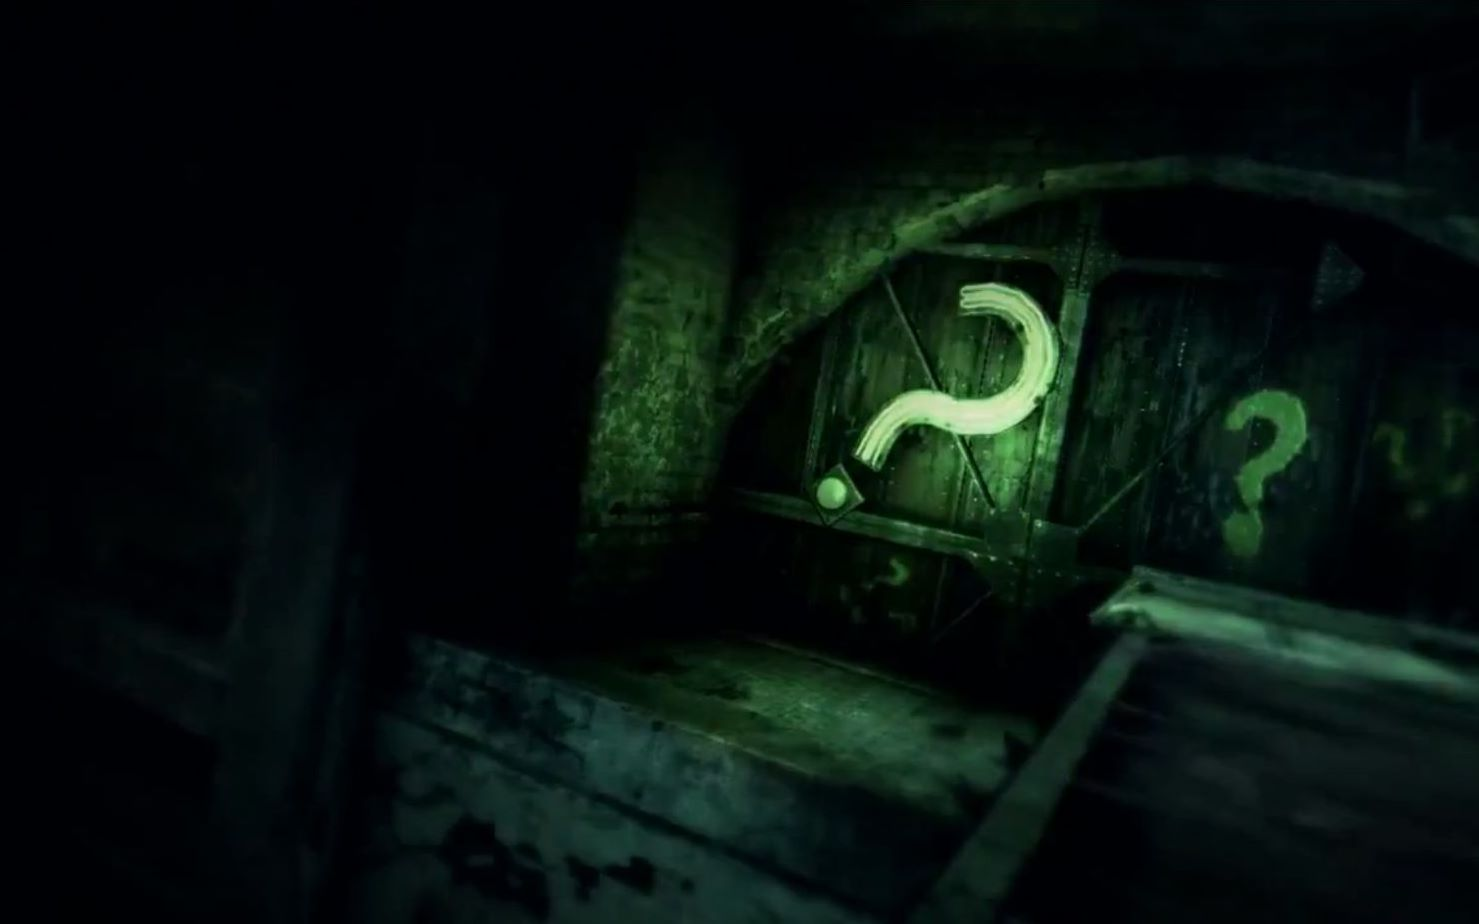 The Riddler Question Mark Wallpaper The game definitely looks to 1479x924